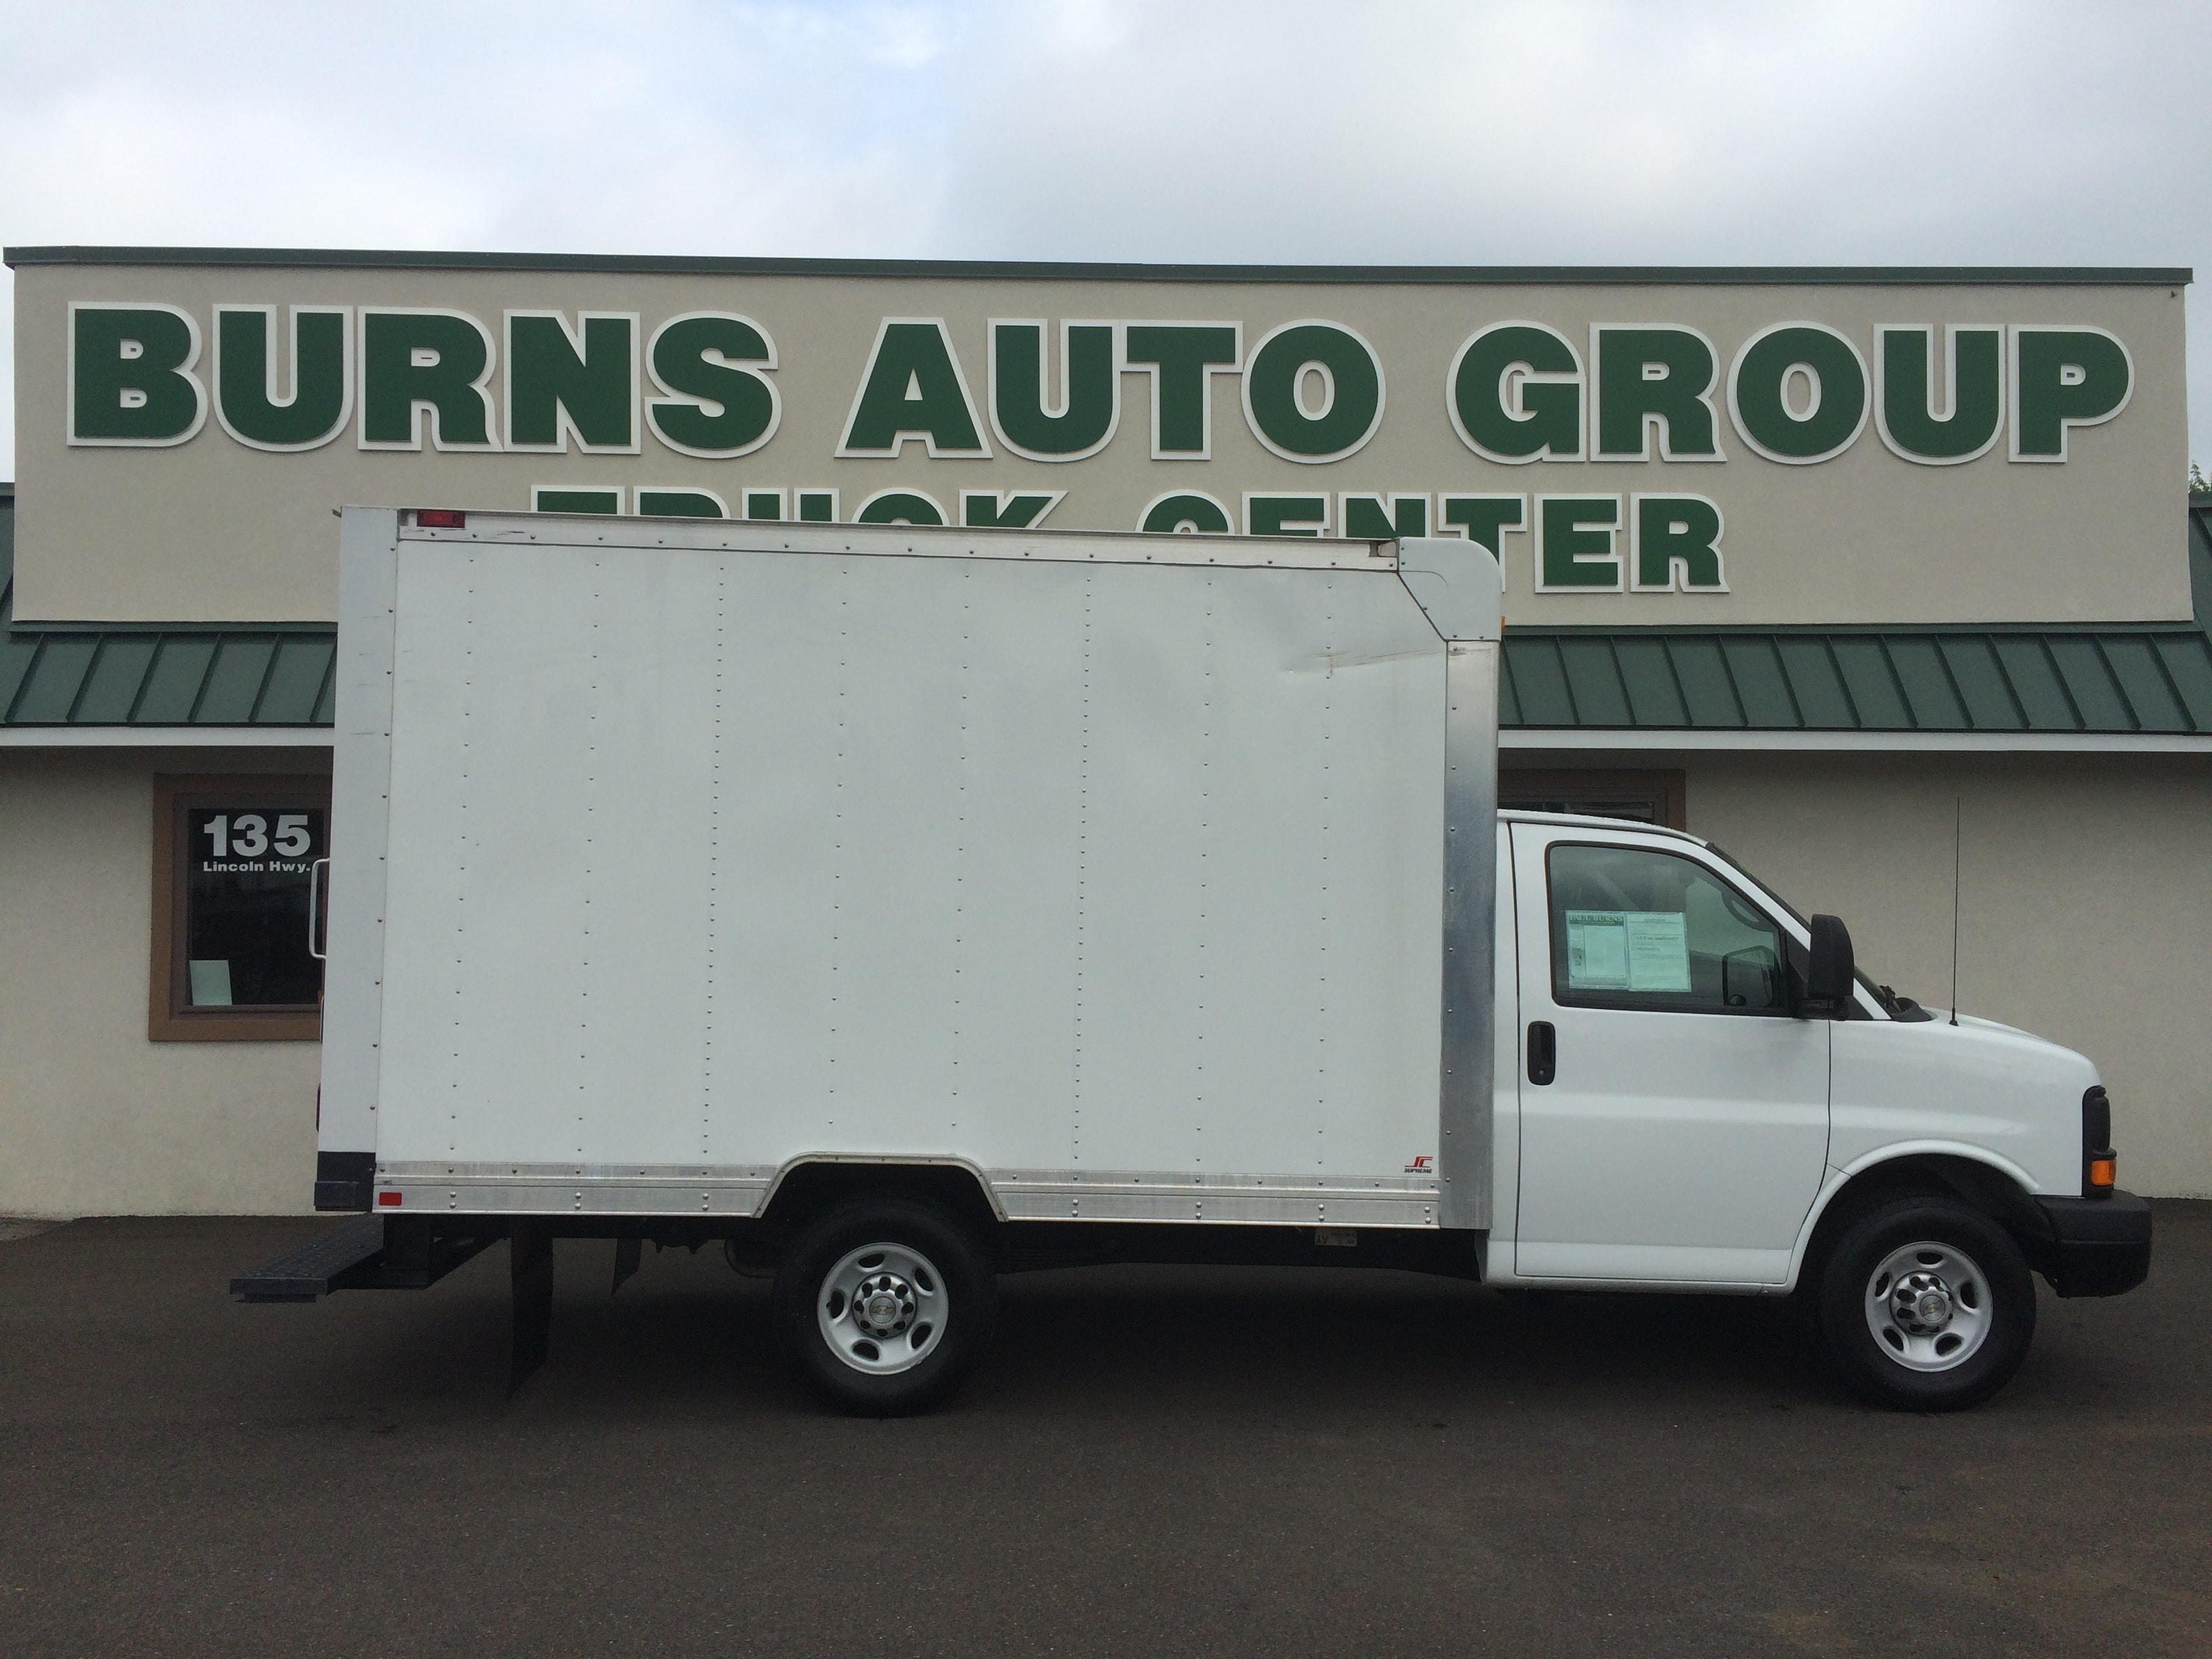 2014 Chevrolet Express Commercial Cutaway Hicube Truck